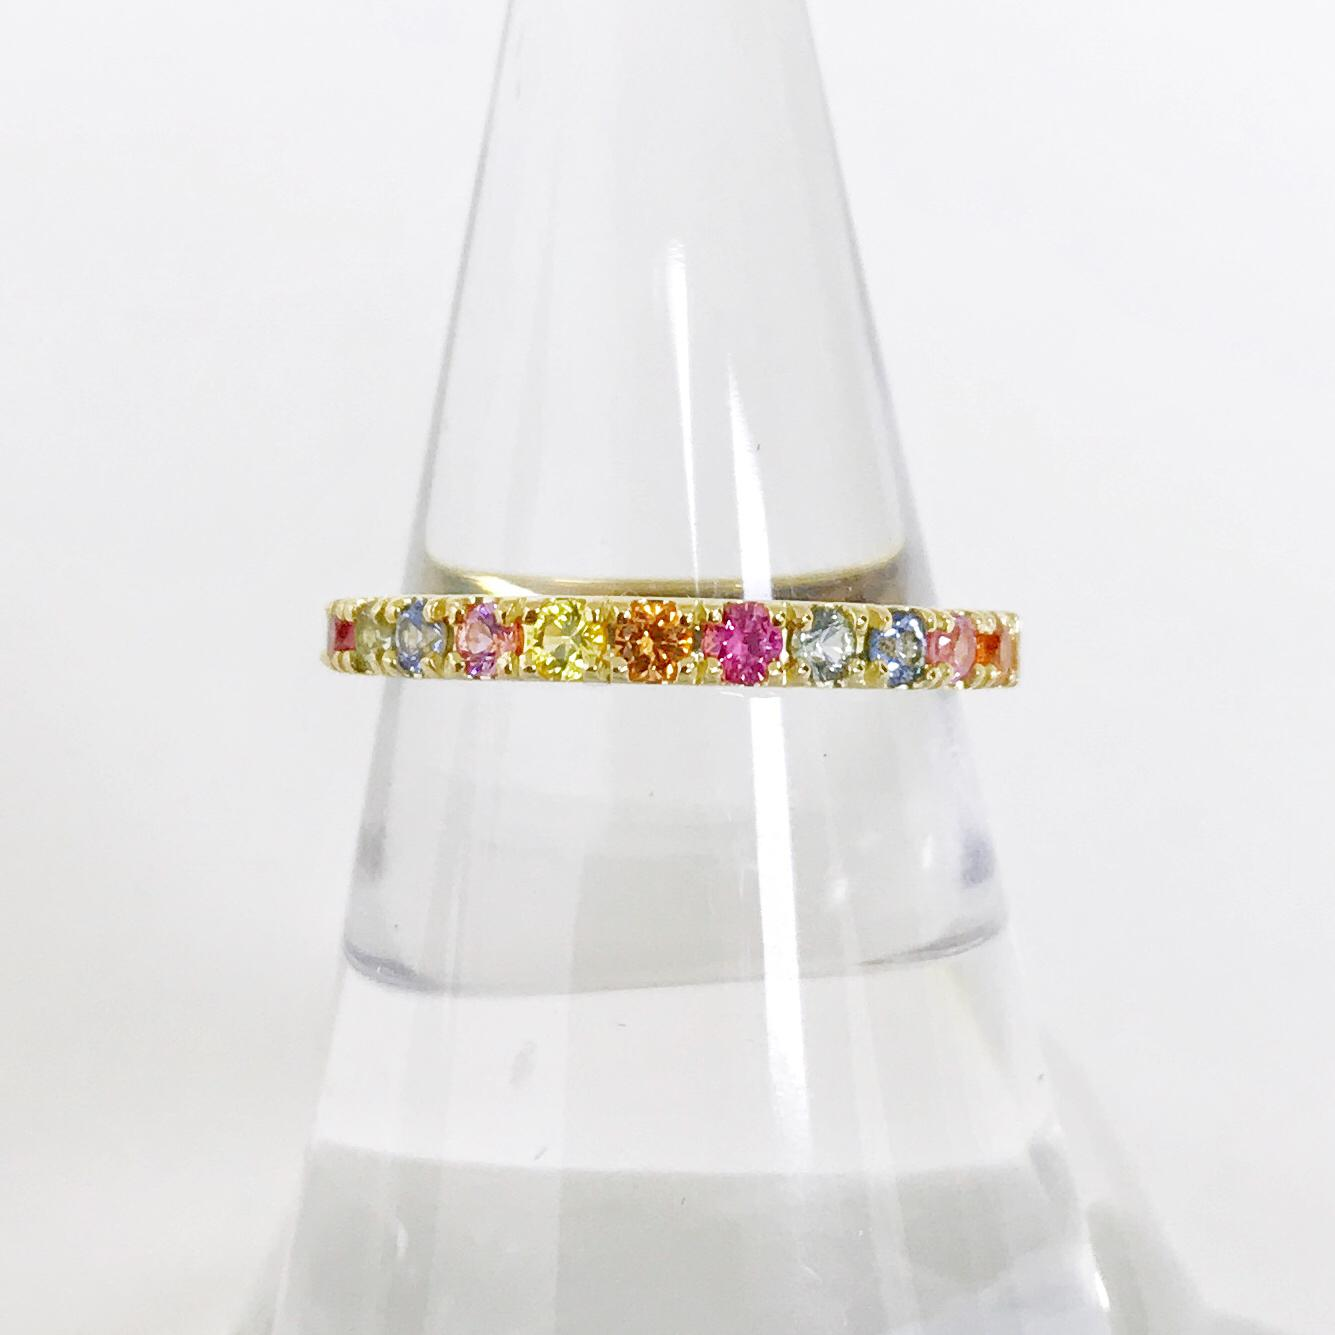 Colored Stone Rings - Rainbow Sapphire Band - image #2